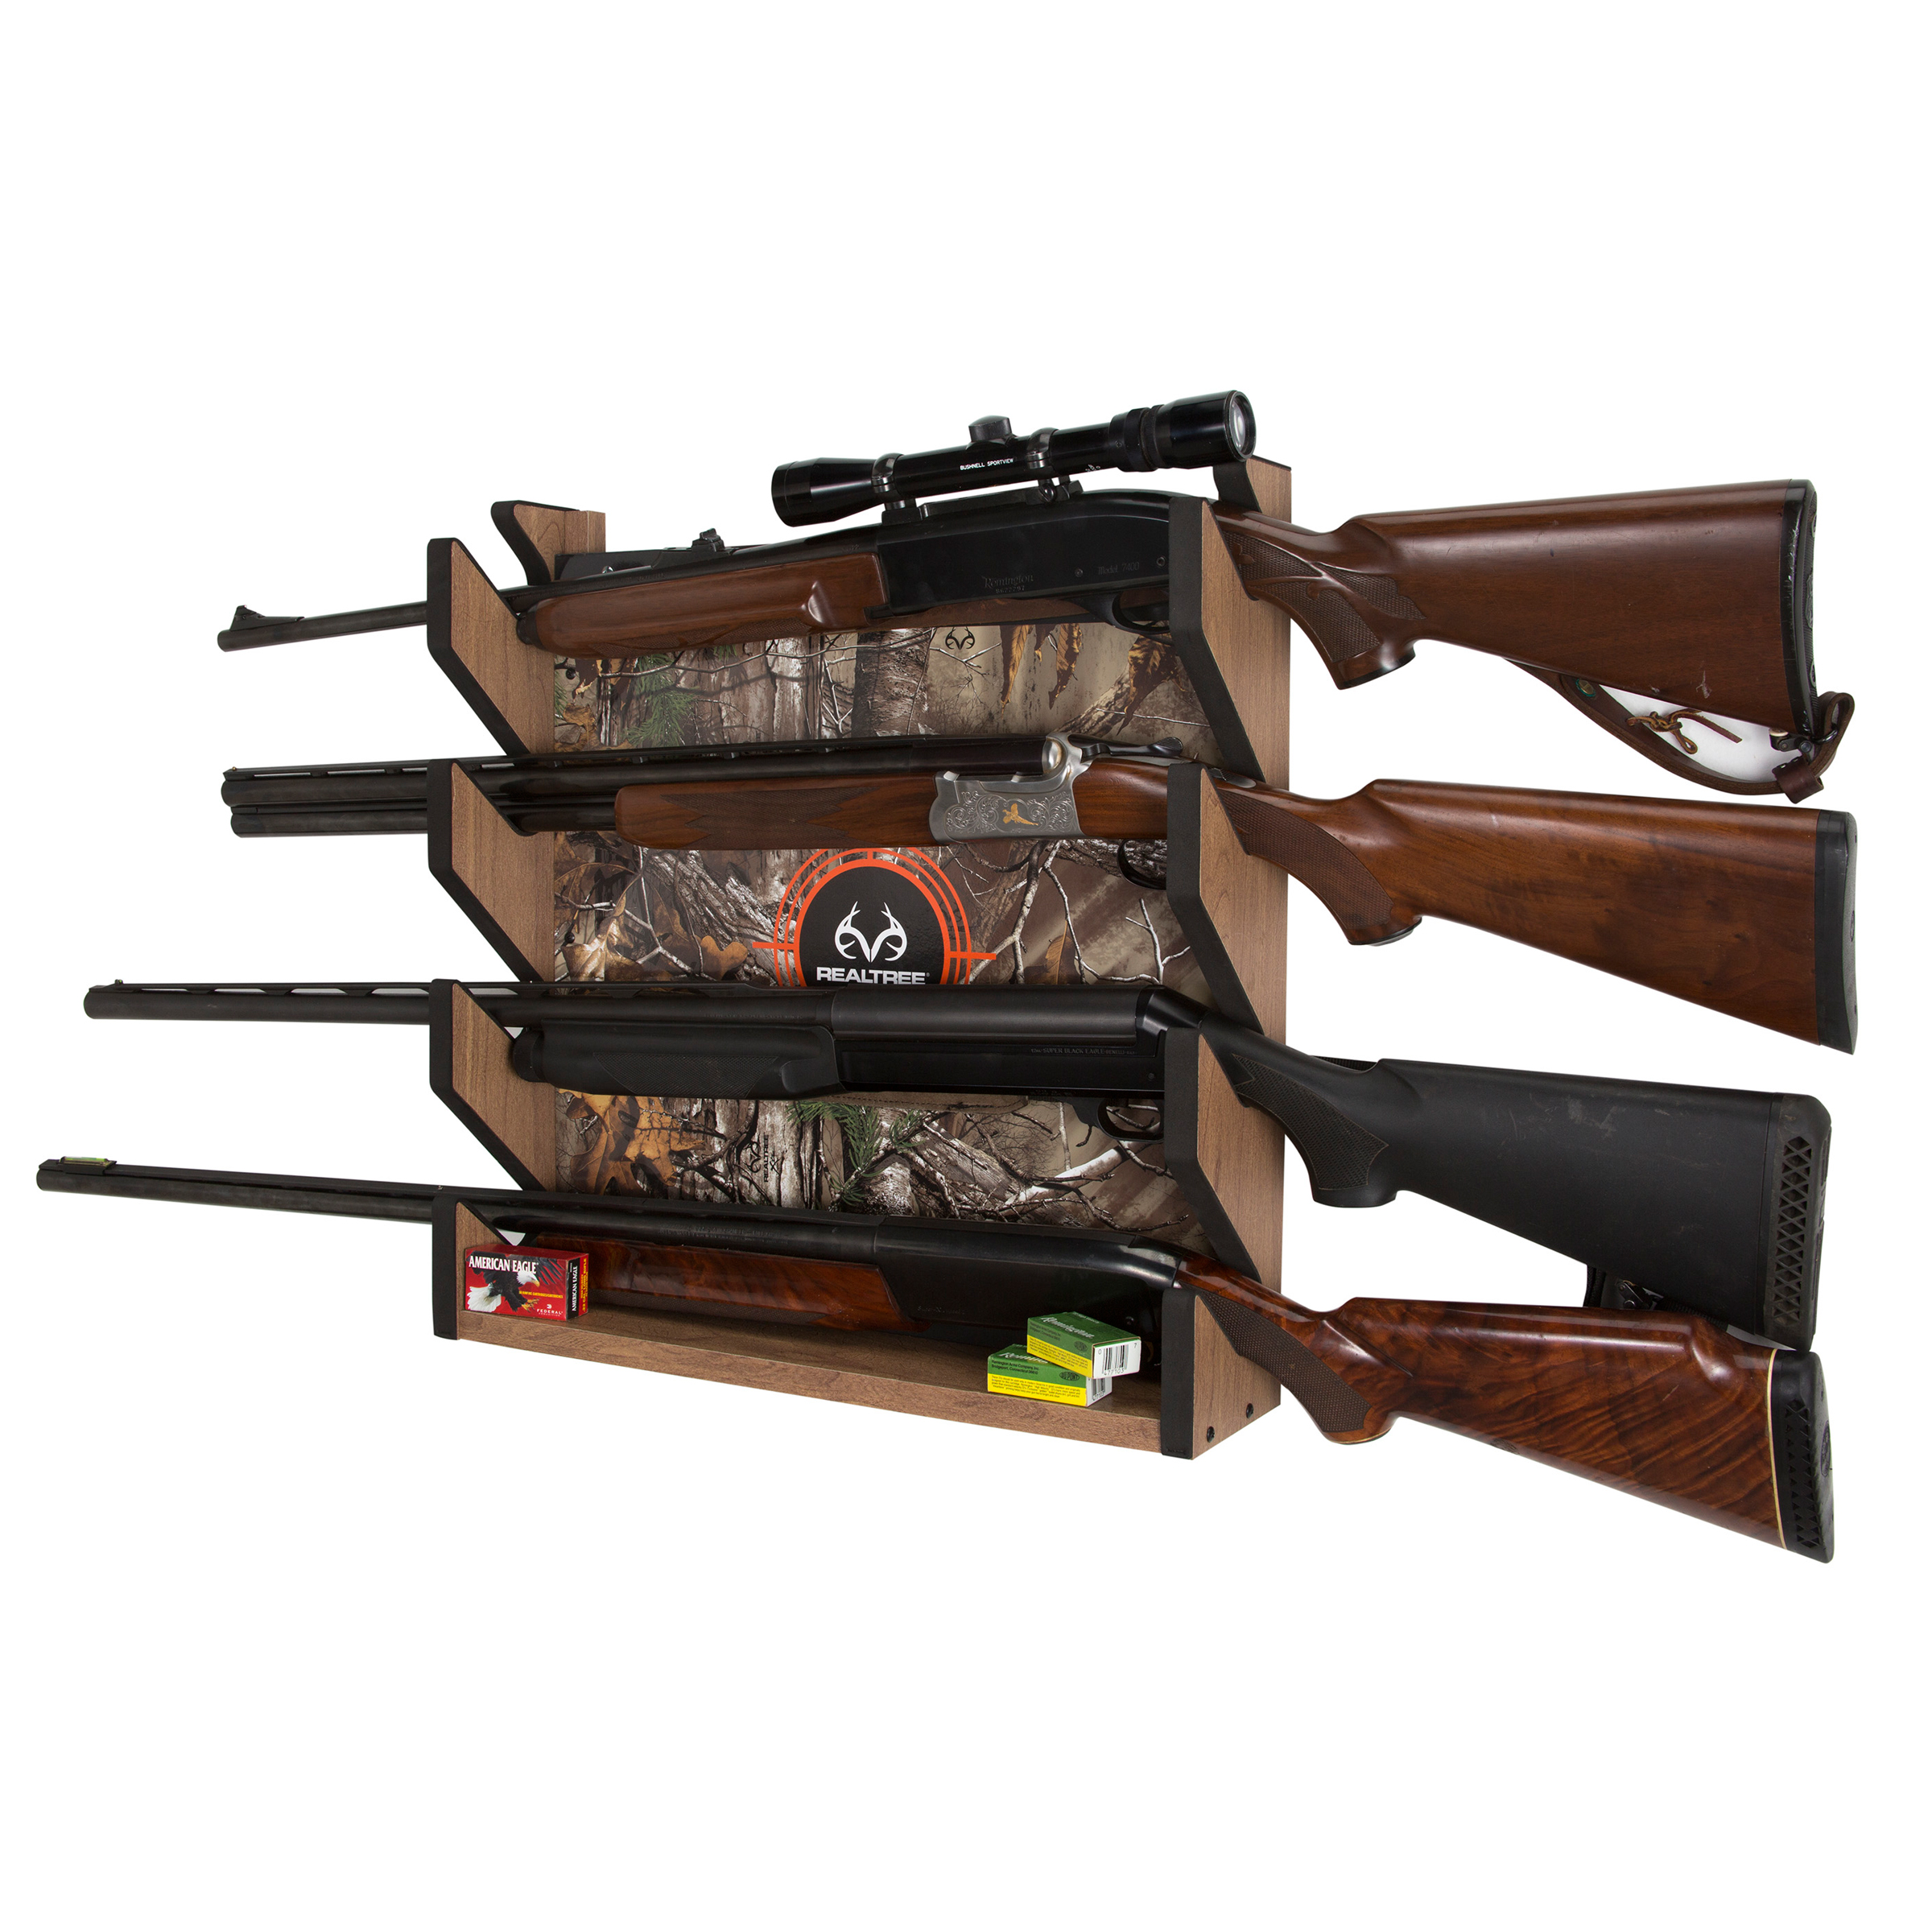 Gun Racks Amp Rifle Racks Gunsafes Com